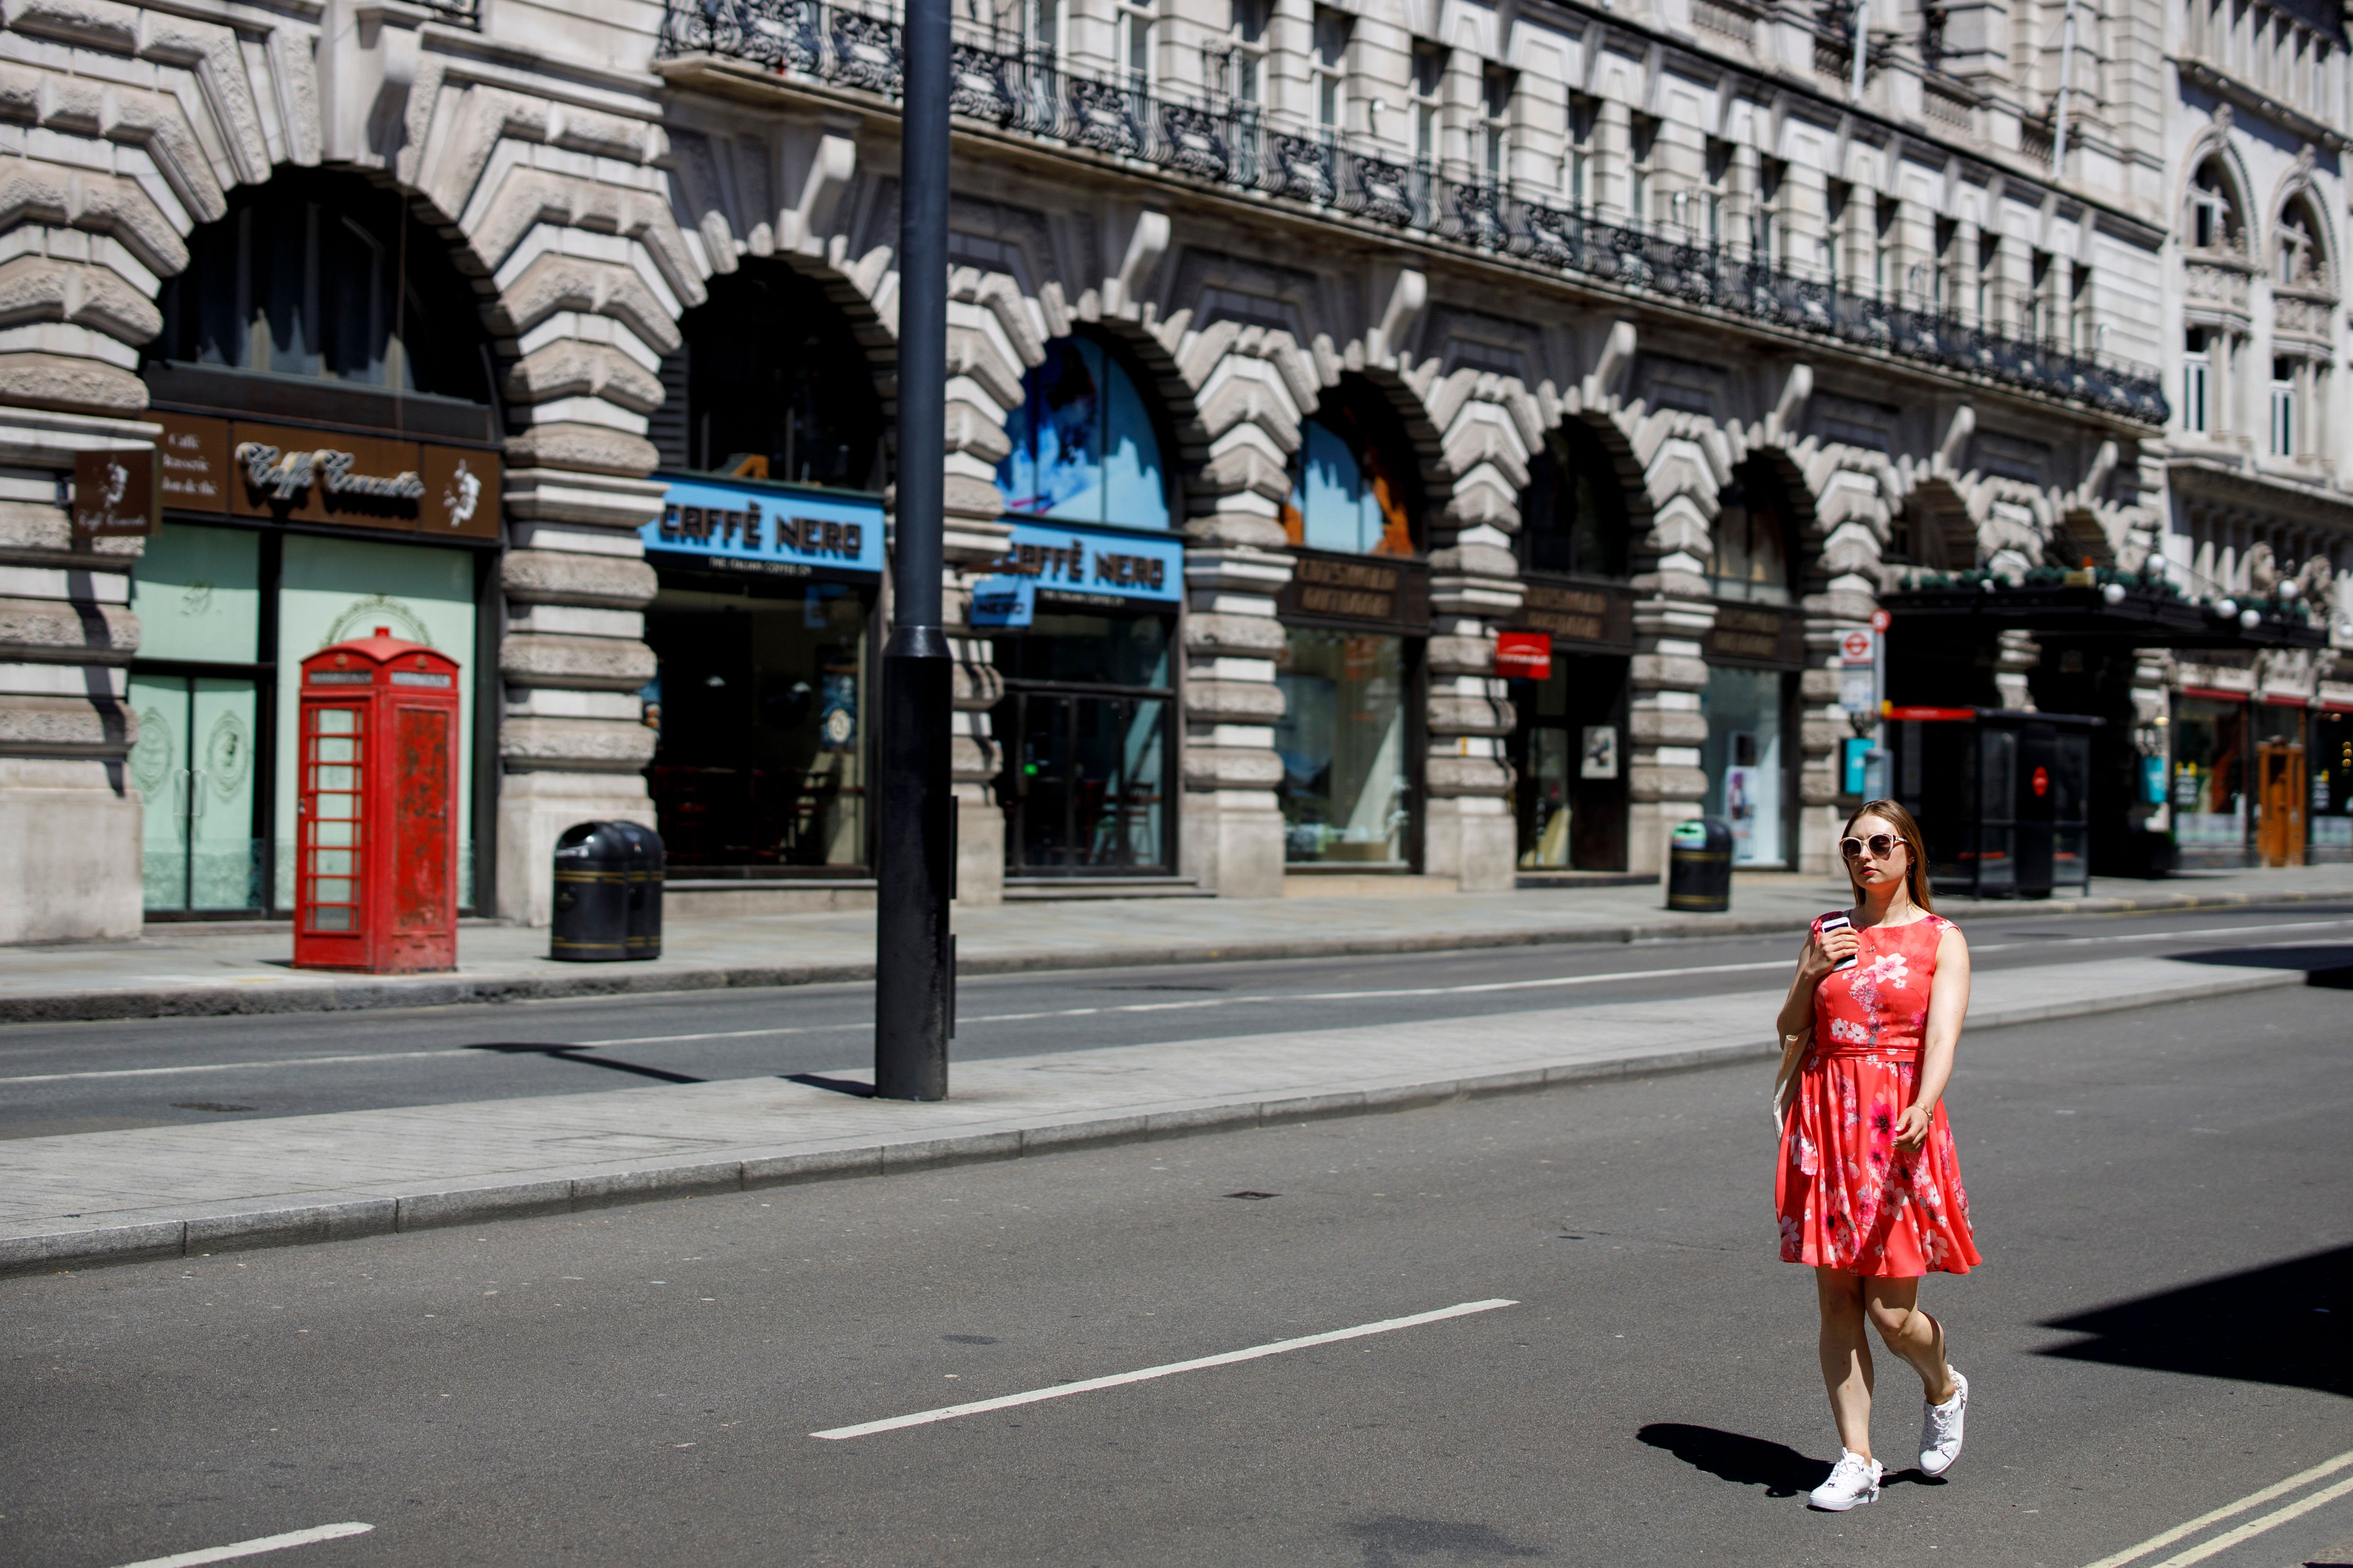 A woman walks past closed shops and restaurants on Piccadilly in central London's main high street retail shopping area on May 29, 2020 ahead of some shops reopening from their coronavirus shutdown from next week. - The UK Prime Minister announced on May 28 that some English schools and shops would reopen from next week people would a little more freedom to meet others in public as he tried to plot Britain's path through a health disaster that has officially claimed 37,837 lives -- second only to the United States -- and devastated the economy. (Photo by Tolga AKMEN / AFP) (Photo by TOLGA AKMEN/AFP via Getty Images)